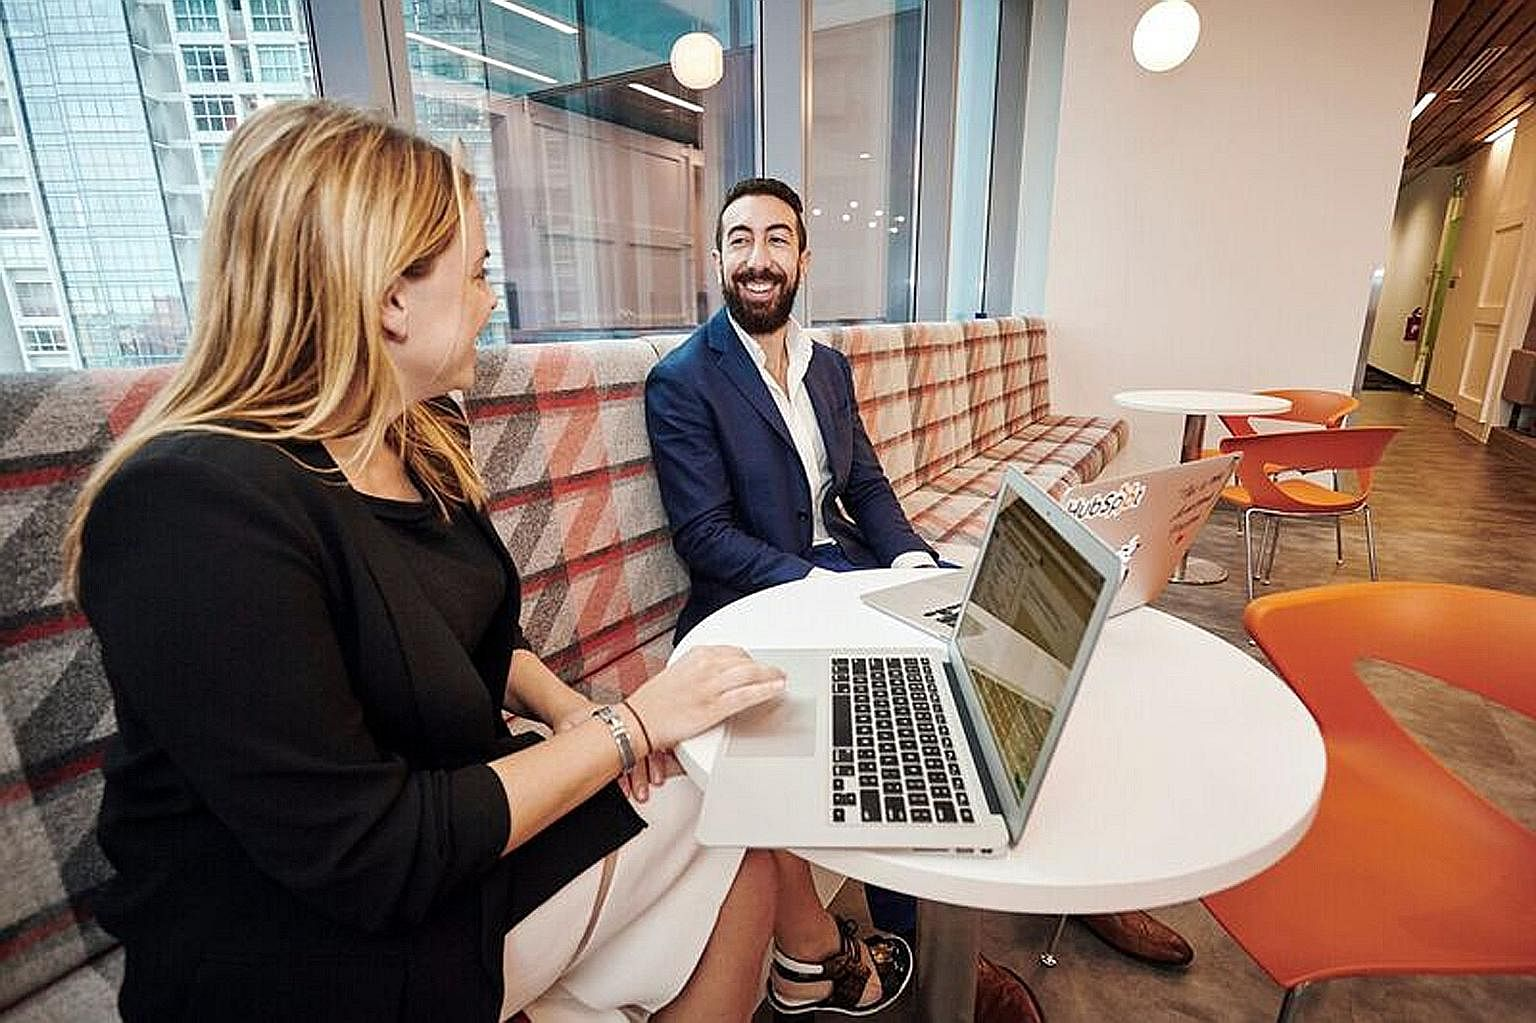 """Employees in HubSpot's trendy office can choose to work anywhere that best suits them. Such concepts allow better collaboration and build a strong sense of community, says its managing director. """"Not even our chief executive has his own office."""""""